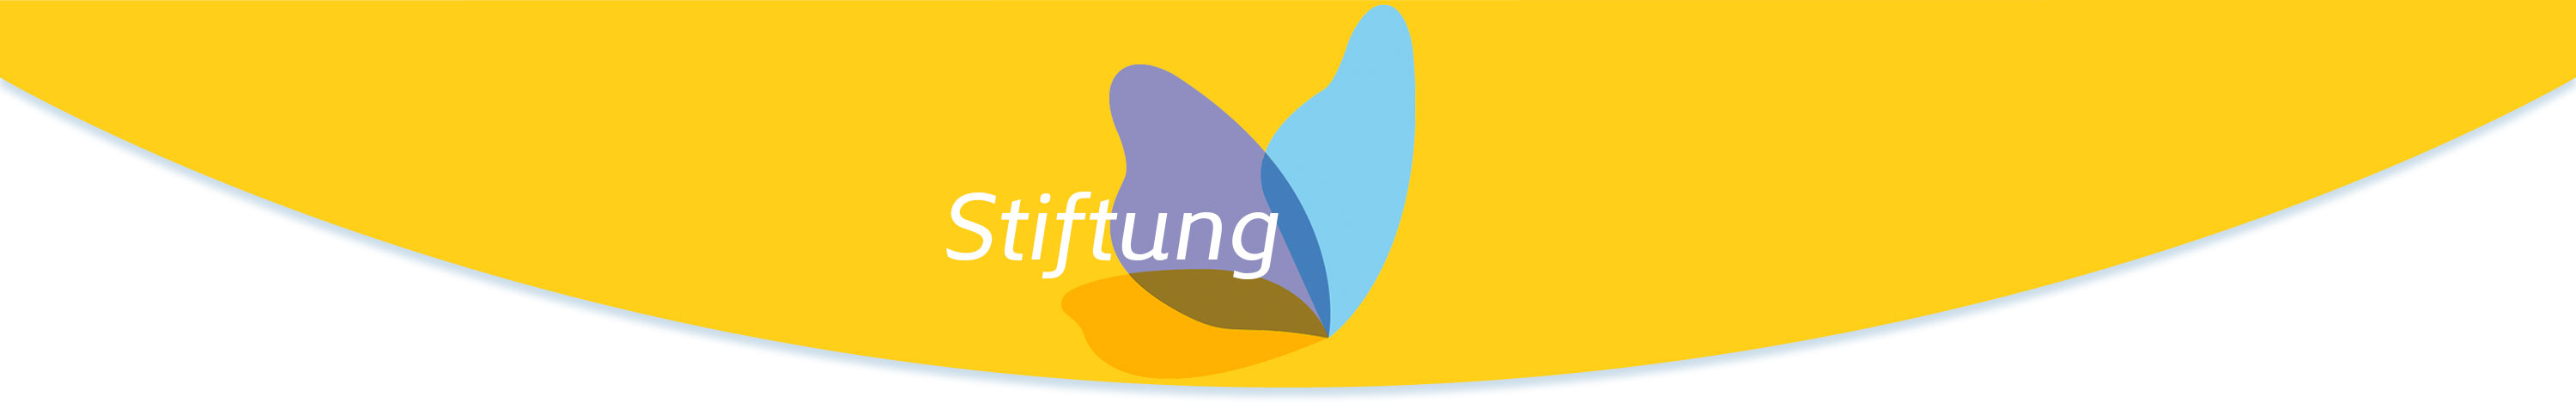 stiftung-01